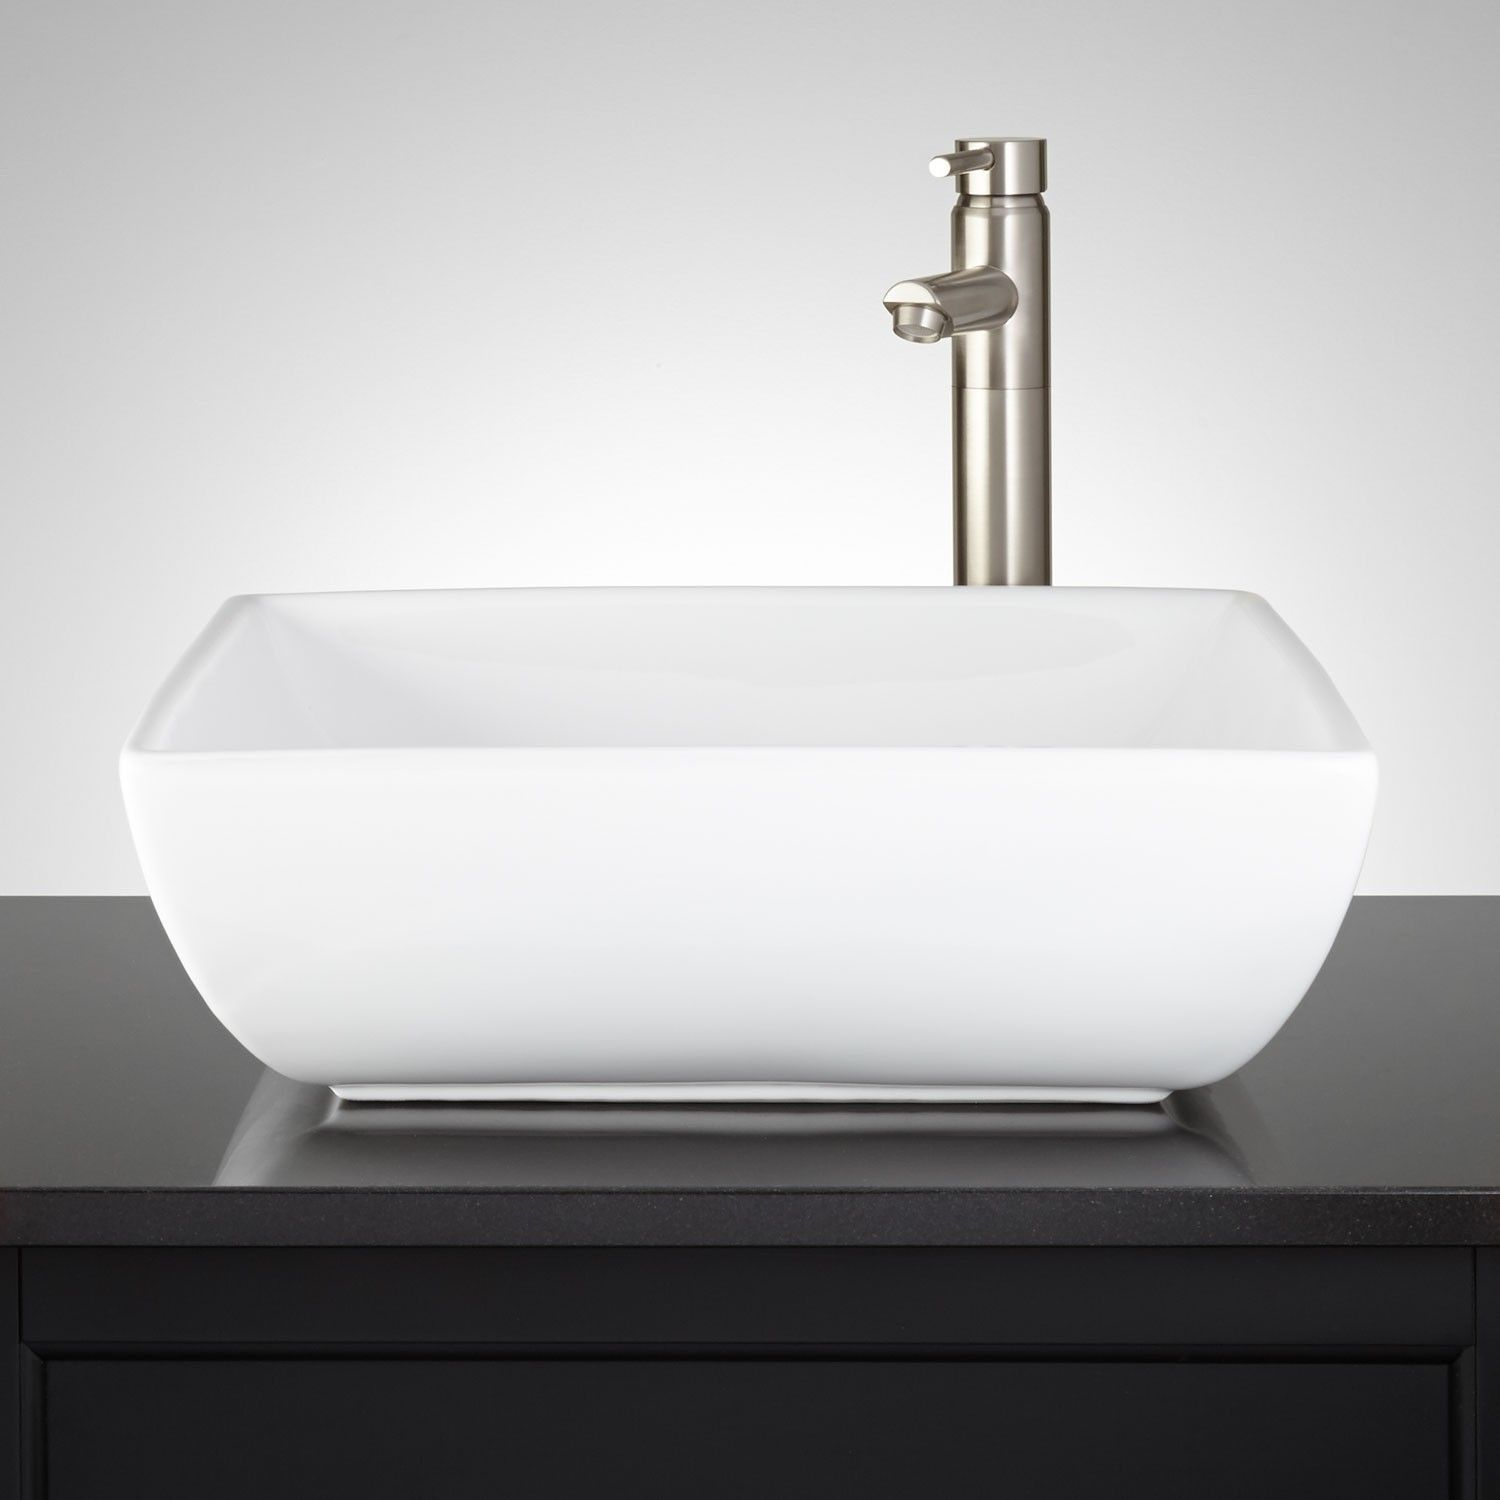 Aureliana Square Porcelain Vessel Sink  Bathroom Sinks  Bathroom